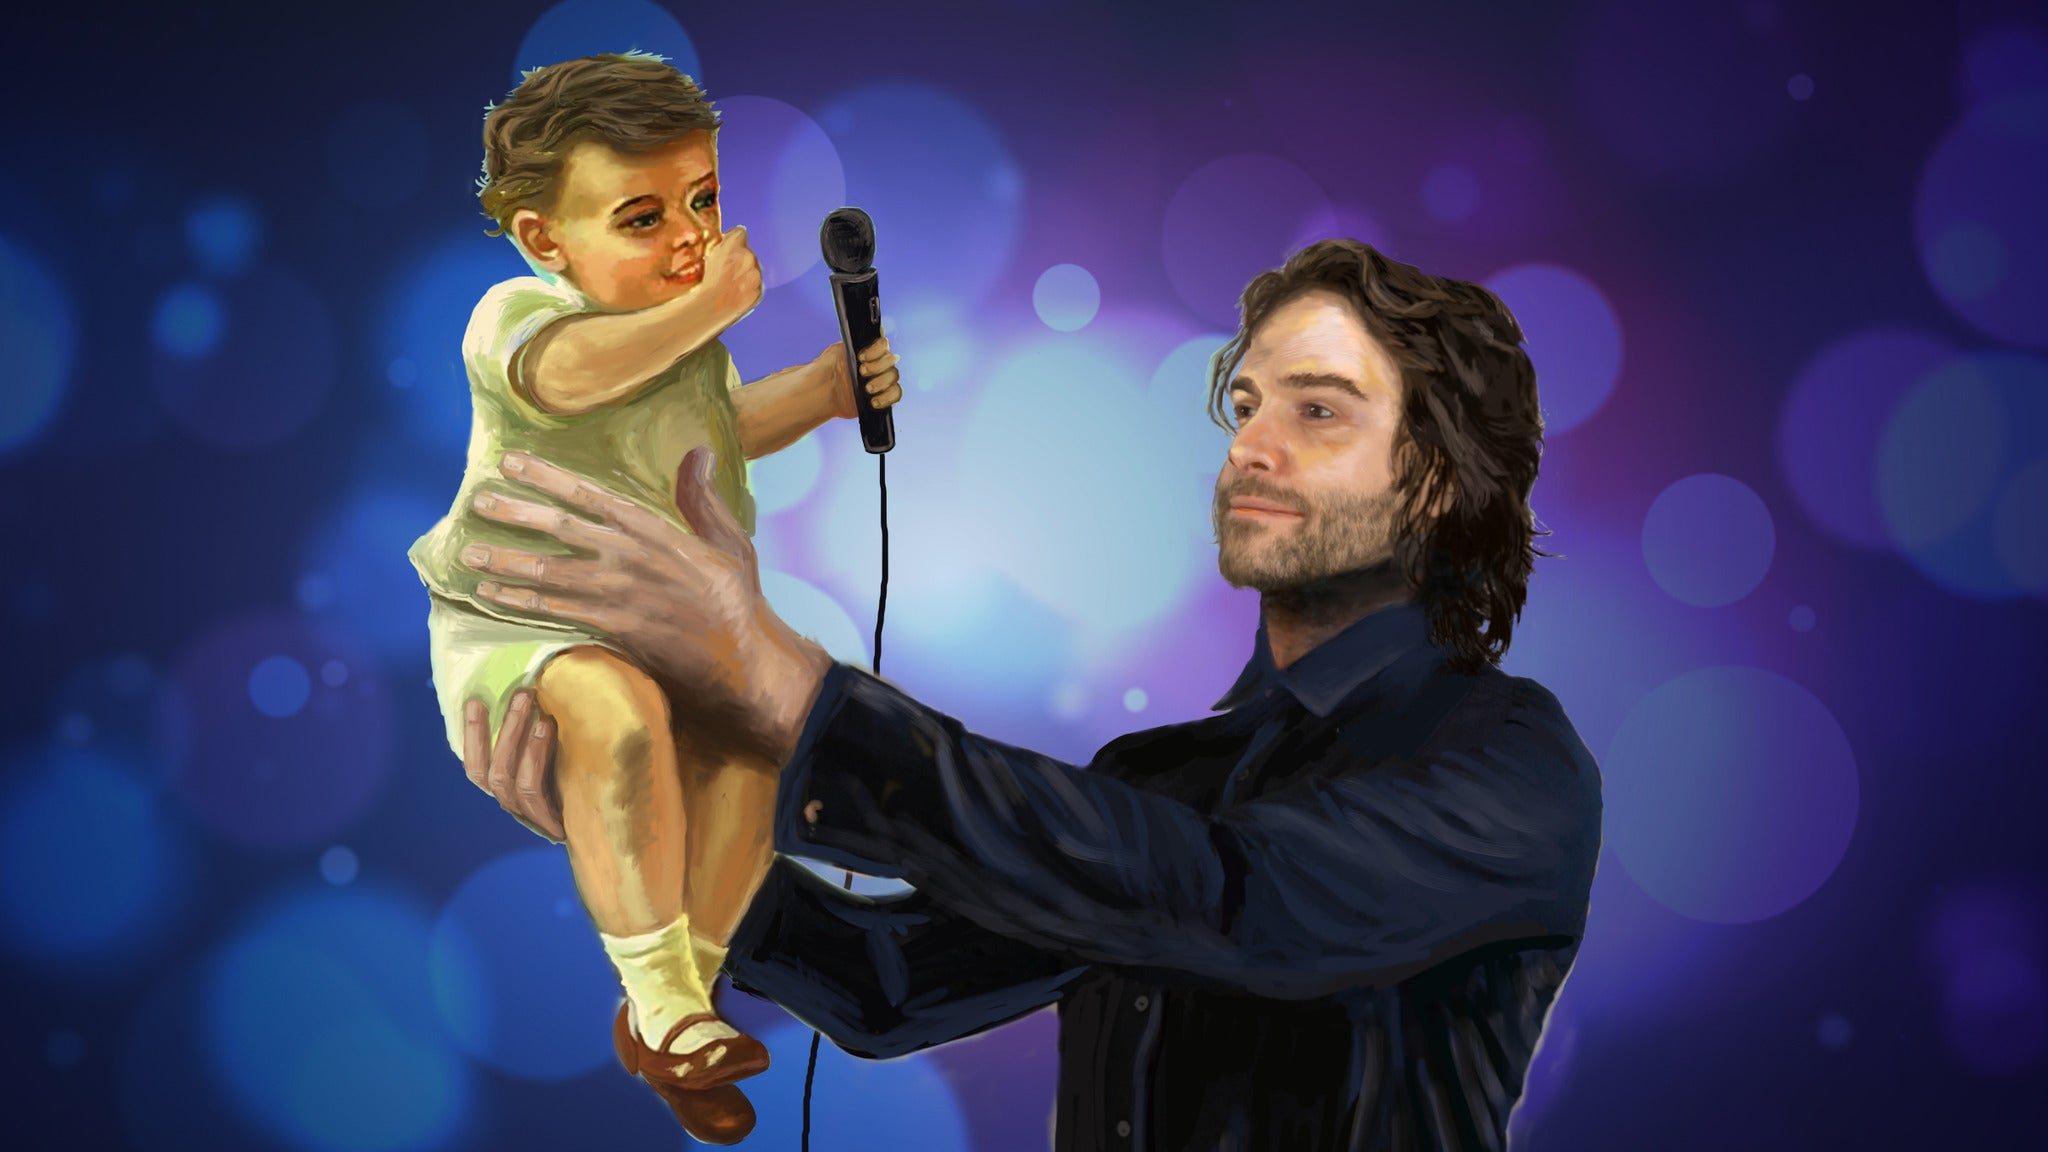 Chris D'elia at City National Civic